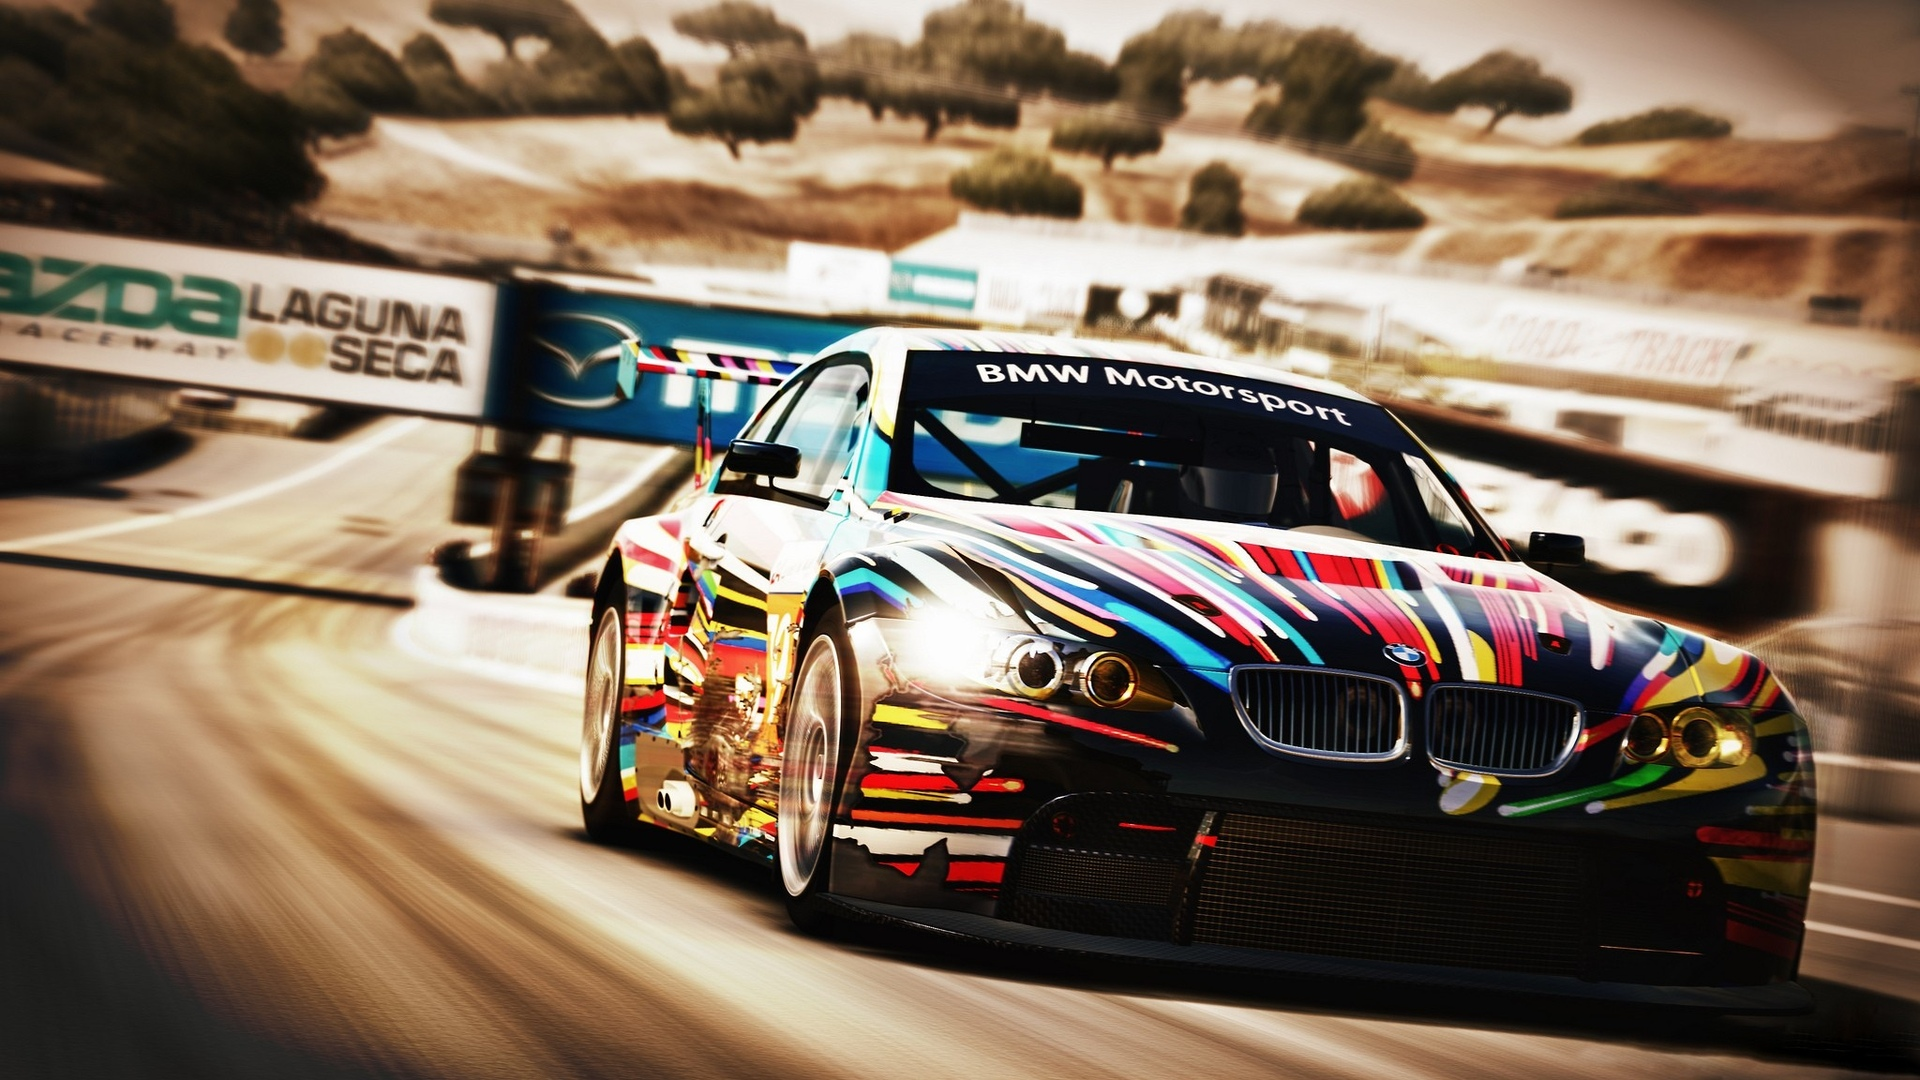 Download Forza Motorsports Vehicles Cars Bmw Racing Race Car Track